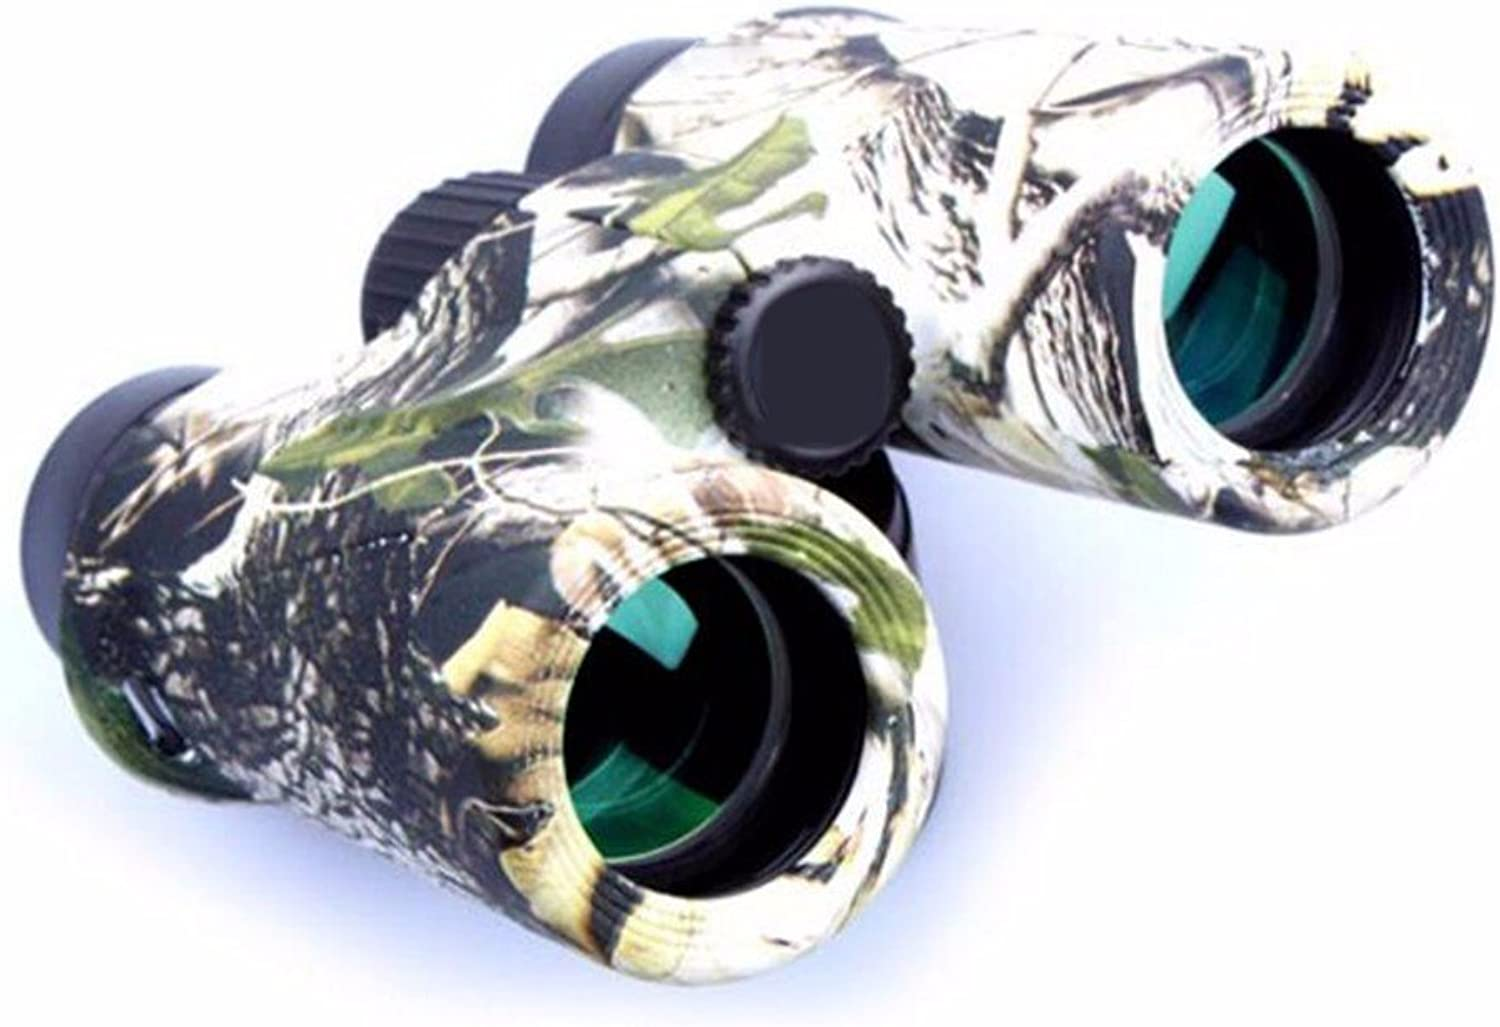 QGYKZ-Binoculars, military mark, night vision, high magnification, waterproof, high-definition, ultra wide-angle, non infrared, 1000 military